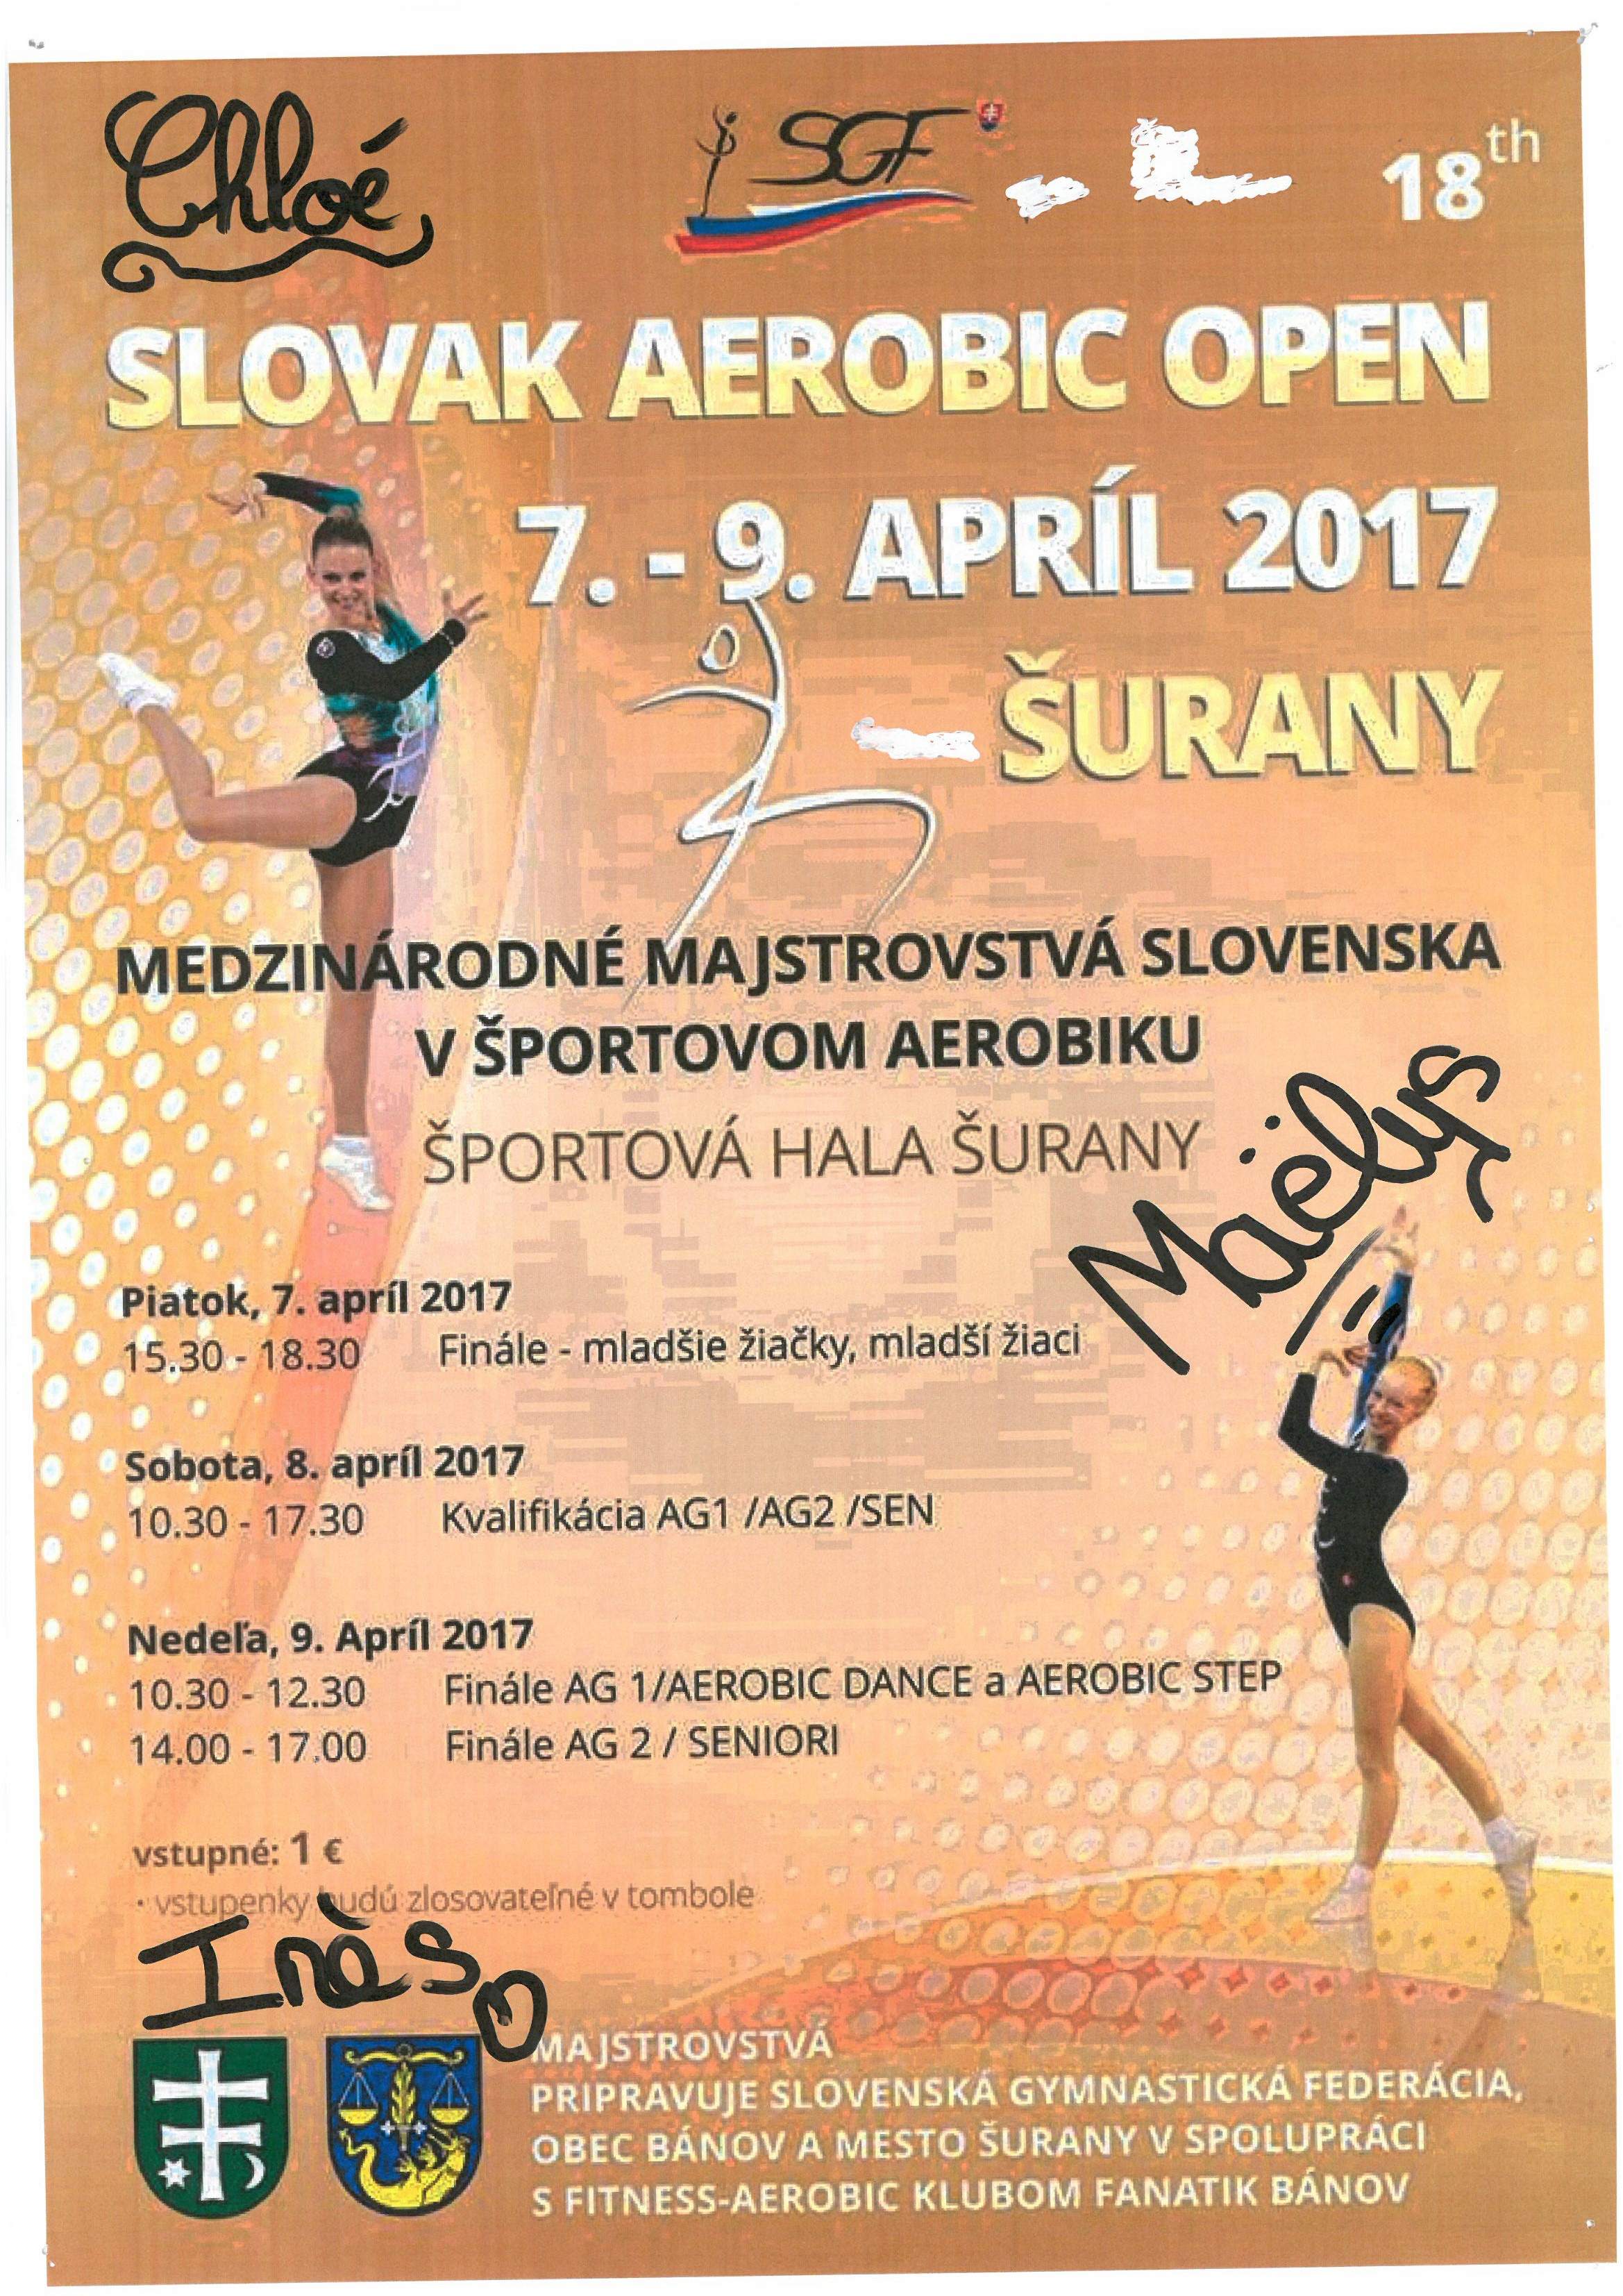 Tournoi international de Slovaquie